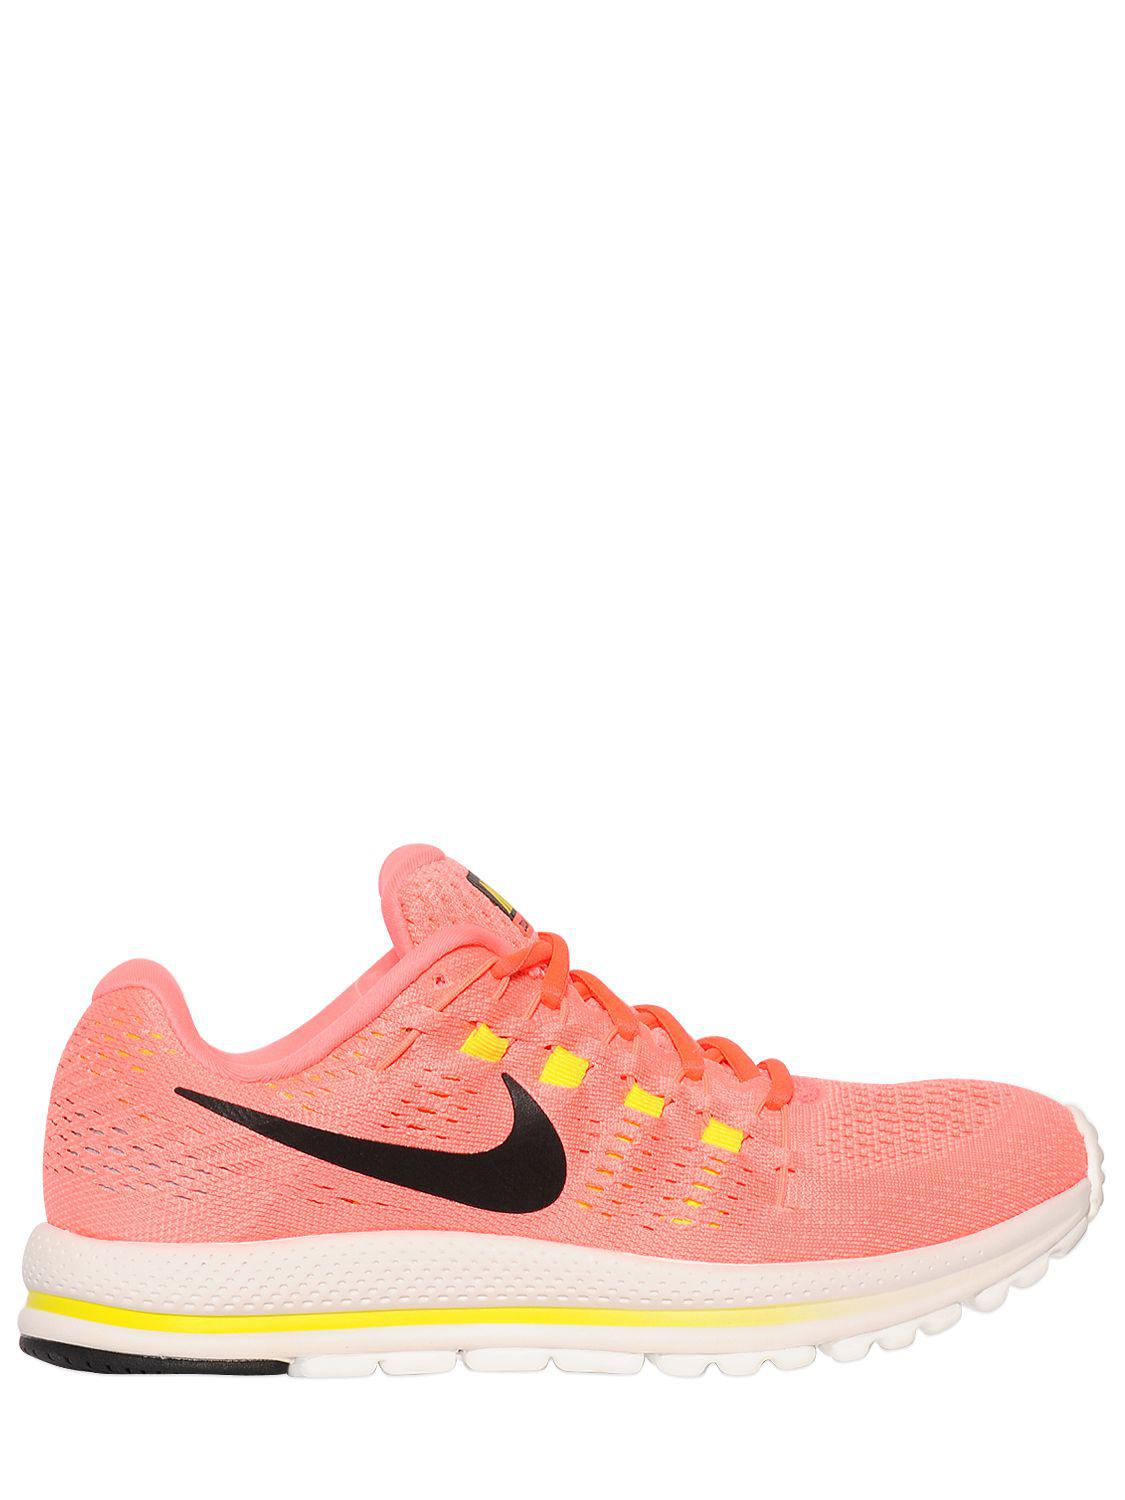 c157339ae947a Nike Running Air Zoom Vomero 12 Sneakers in Pink - Lyst